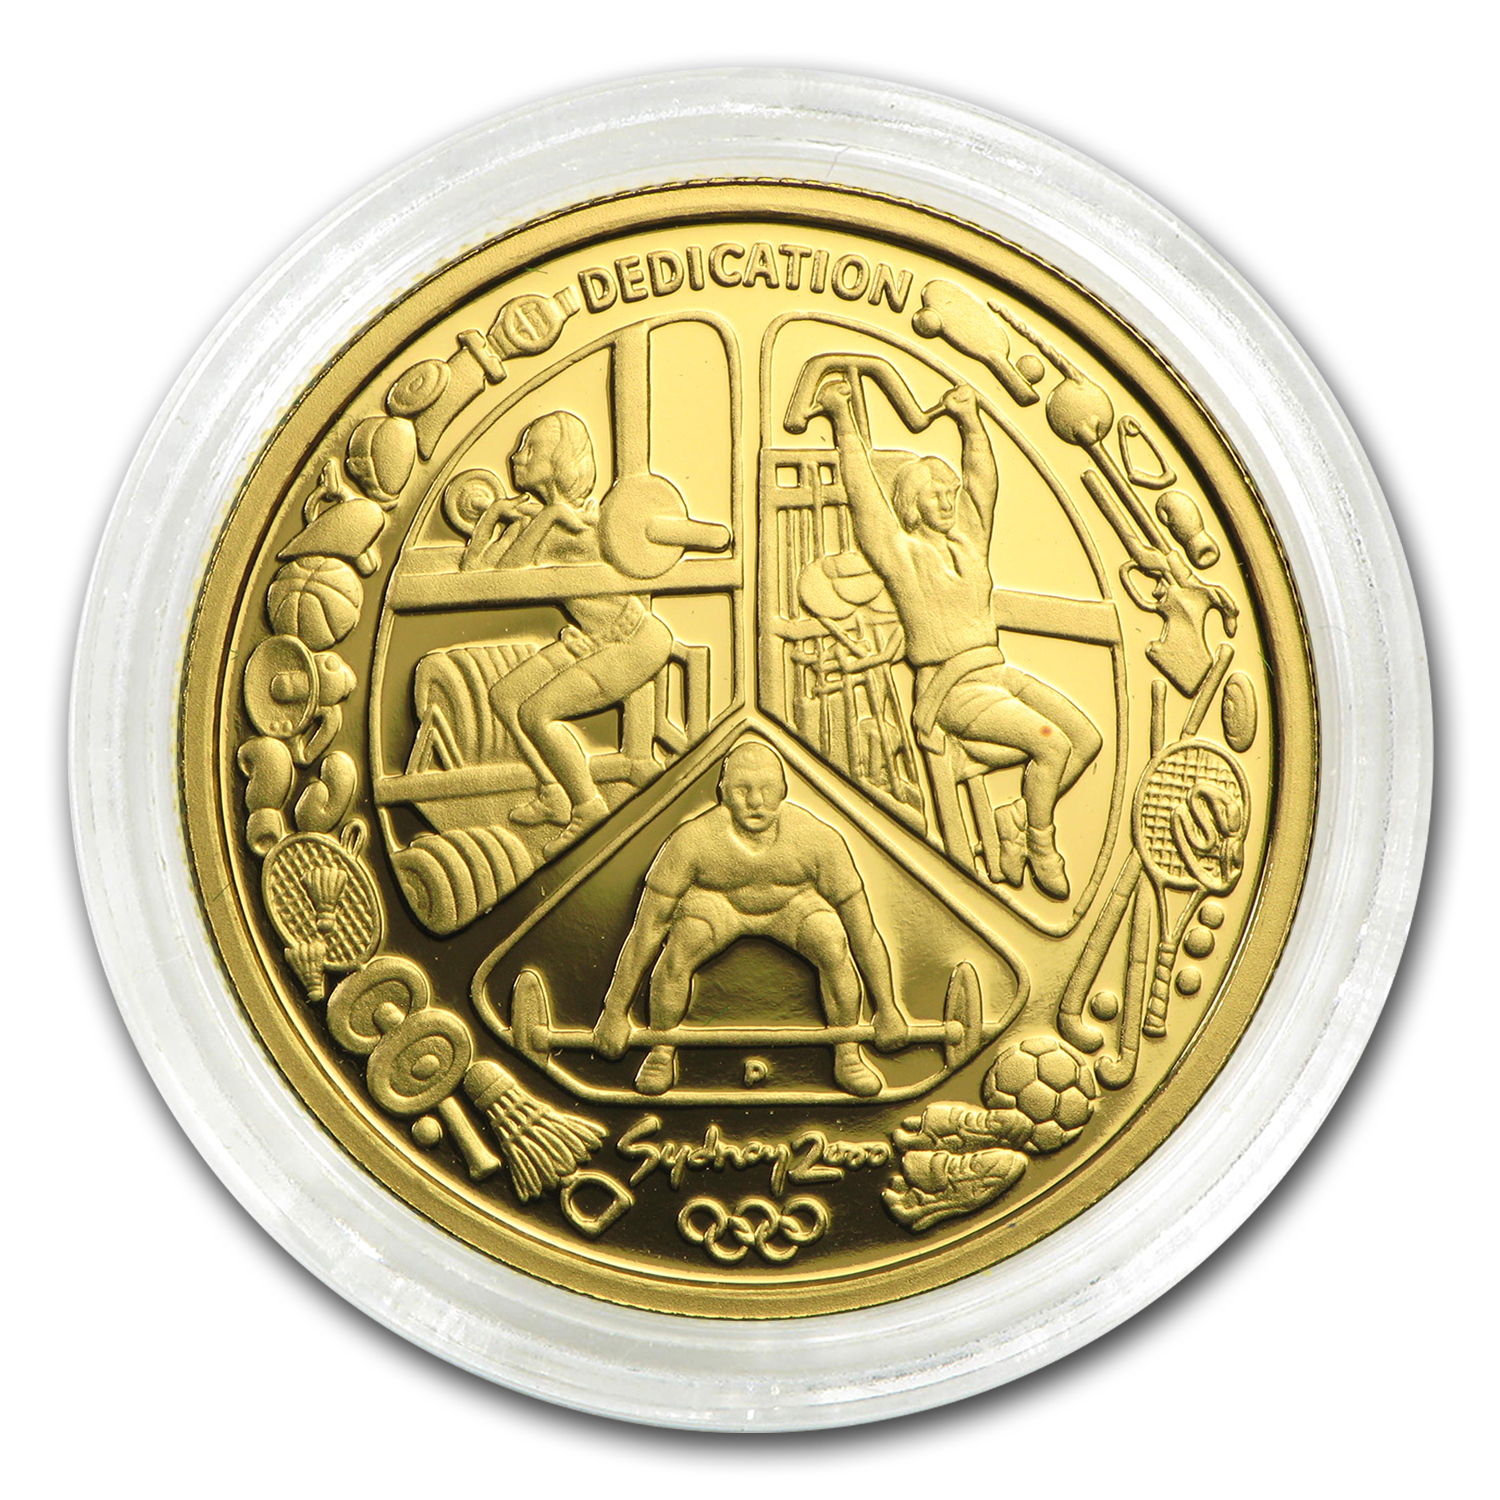 Australia 2000 100 Dollars Gold Proof Olympics - AGW .3215